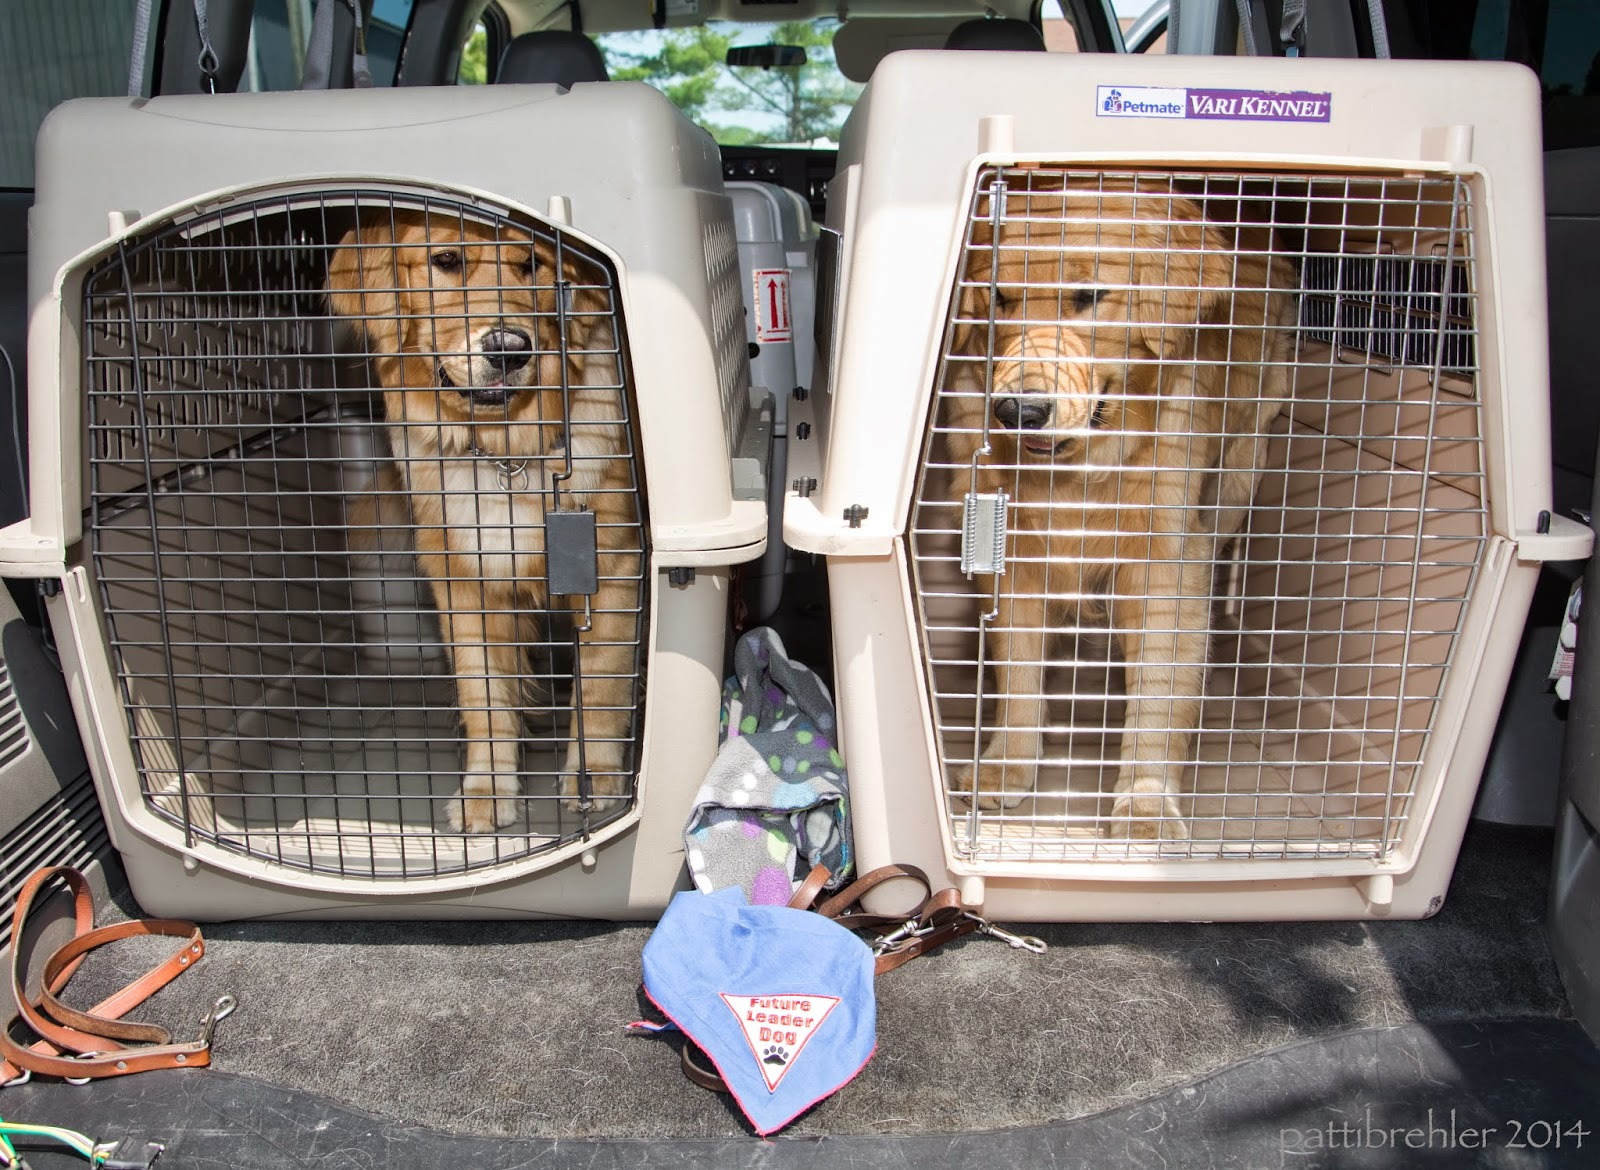 Two airline crates are in the back of a van with two golden retrievers in them. The dogs are both standing up looking out from the crates. There are two leashes on the floor of the van in front of the crates and a blue Future Leader Dog bandana.